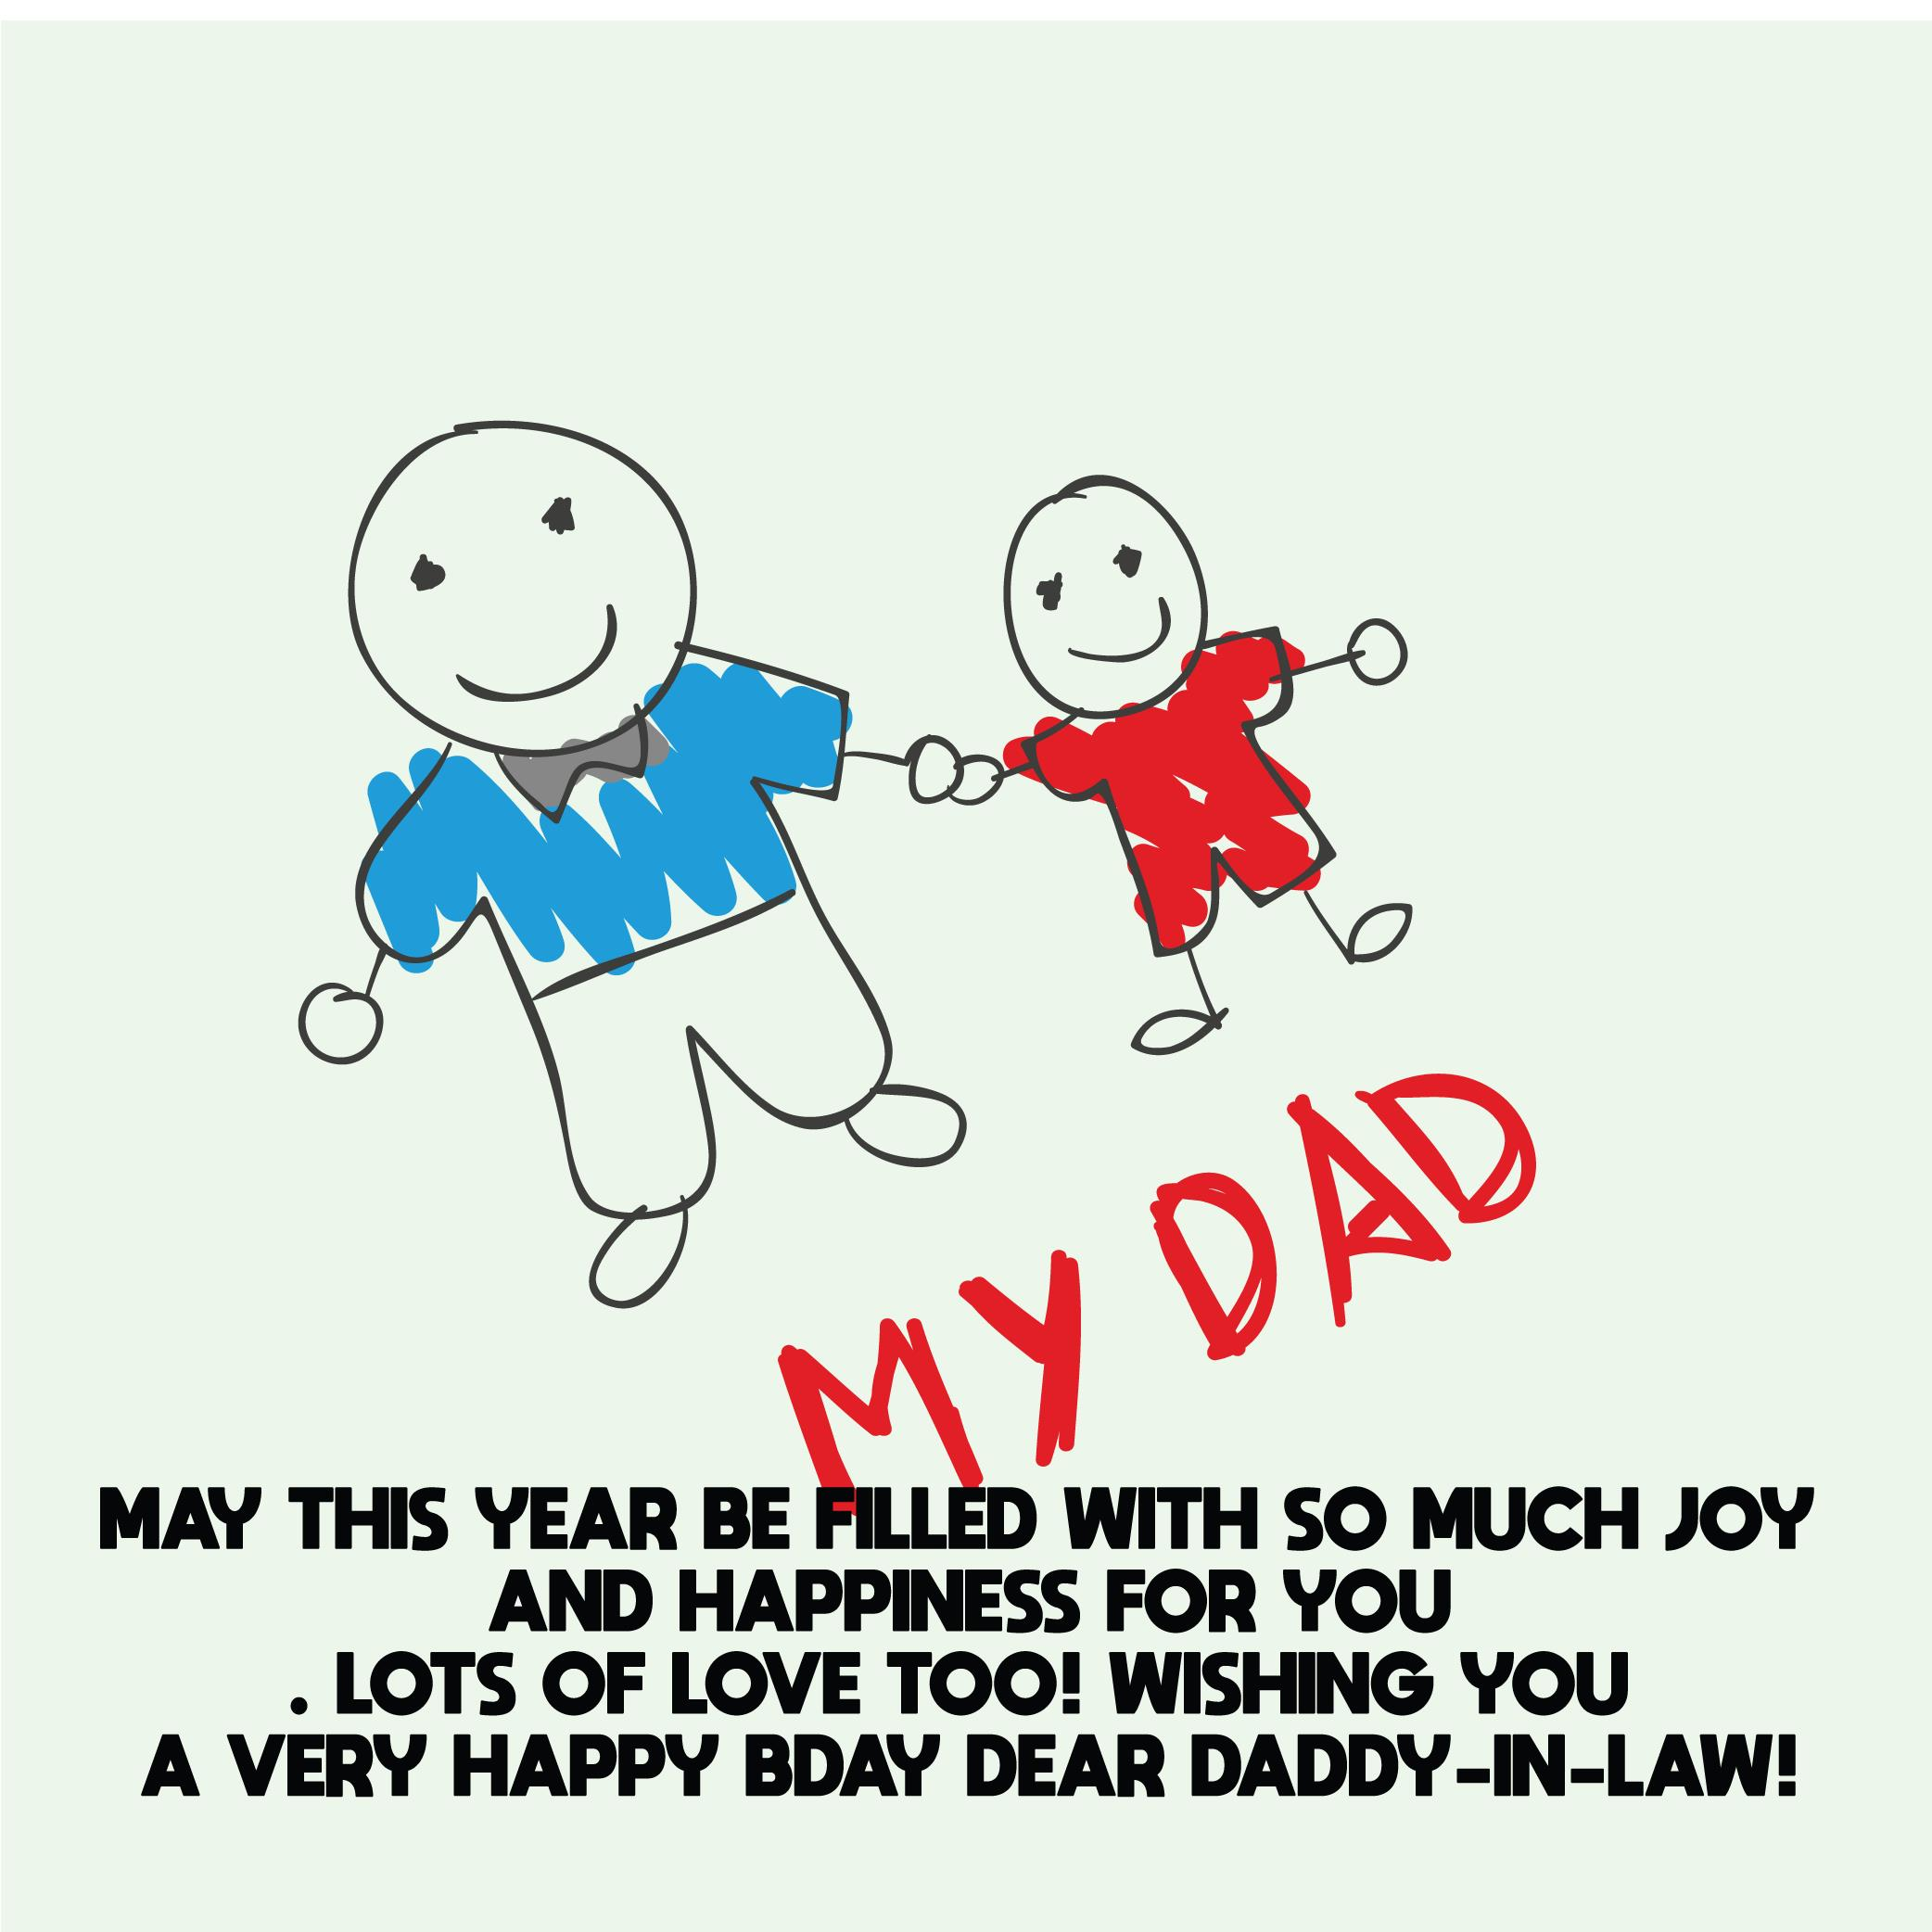 happy-birthday-father-in-law-01